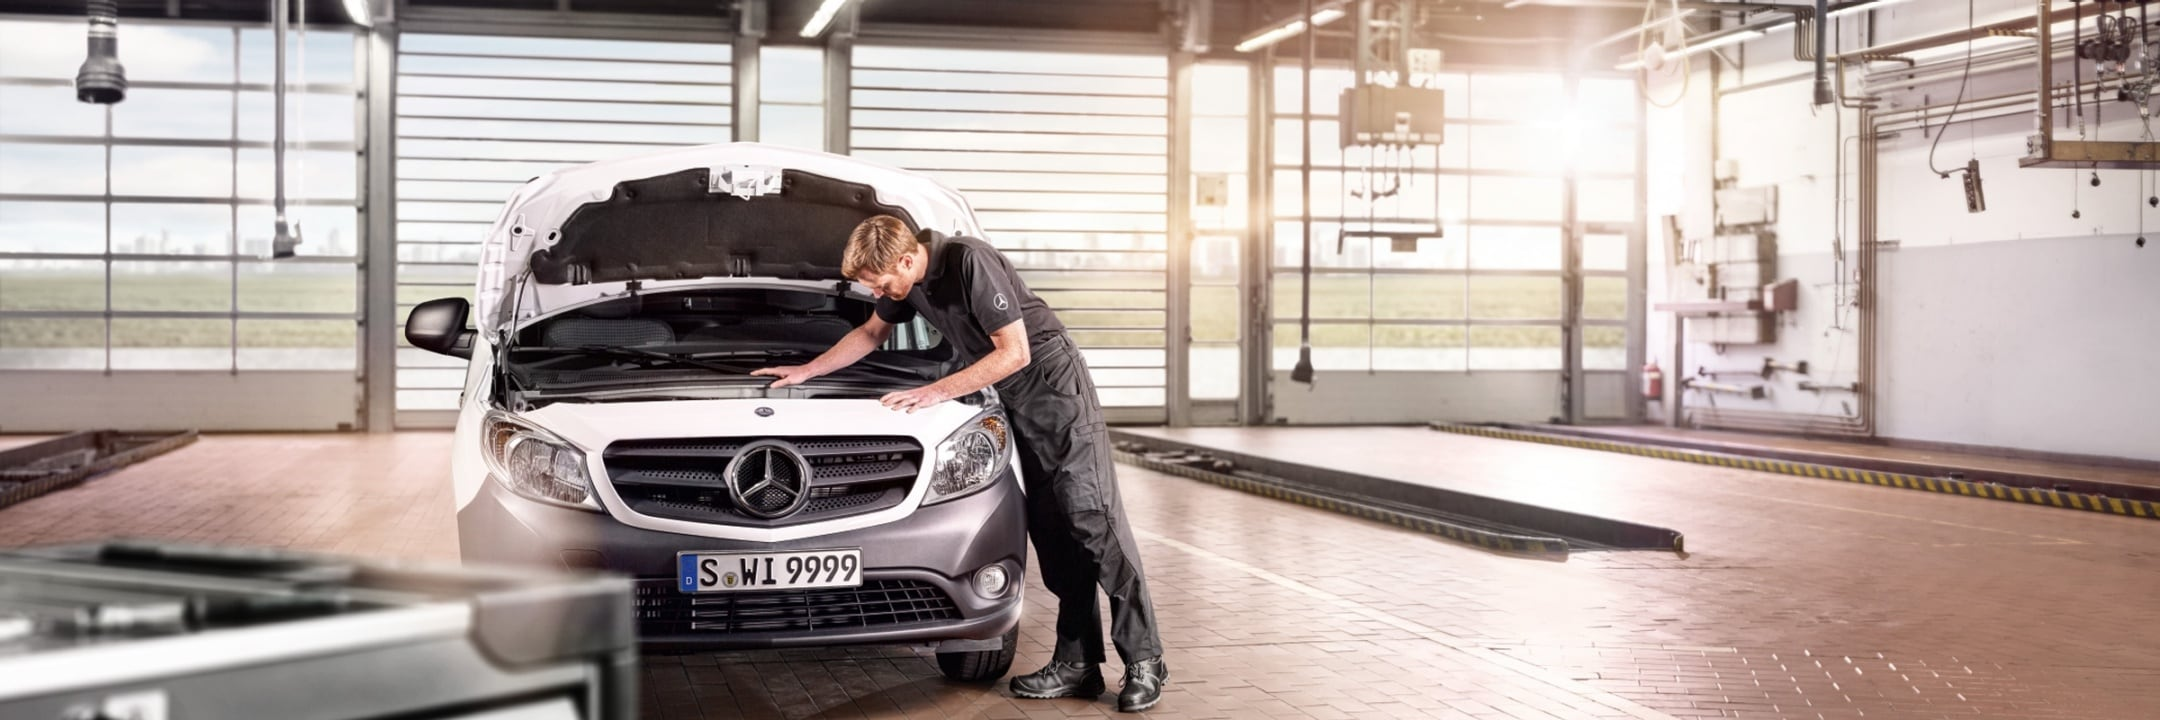 Assistenza Mercedes-Benz e Ricambi Originali per clienti Business e privati